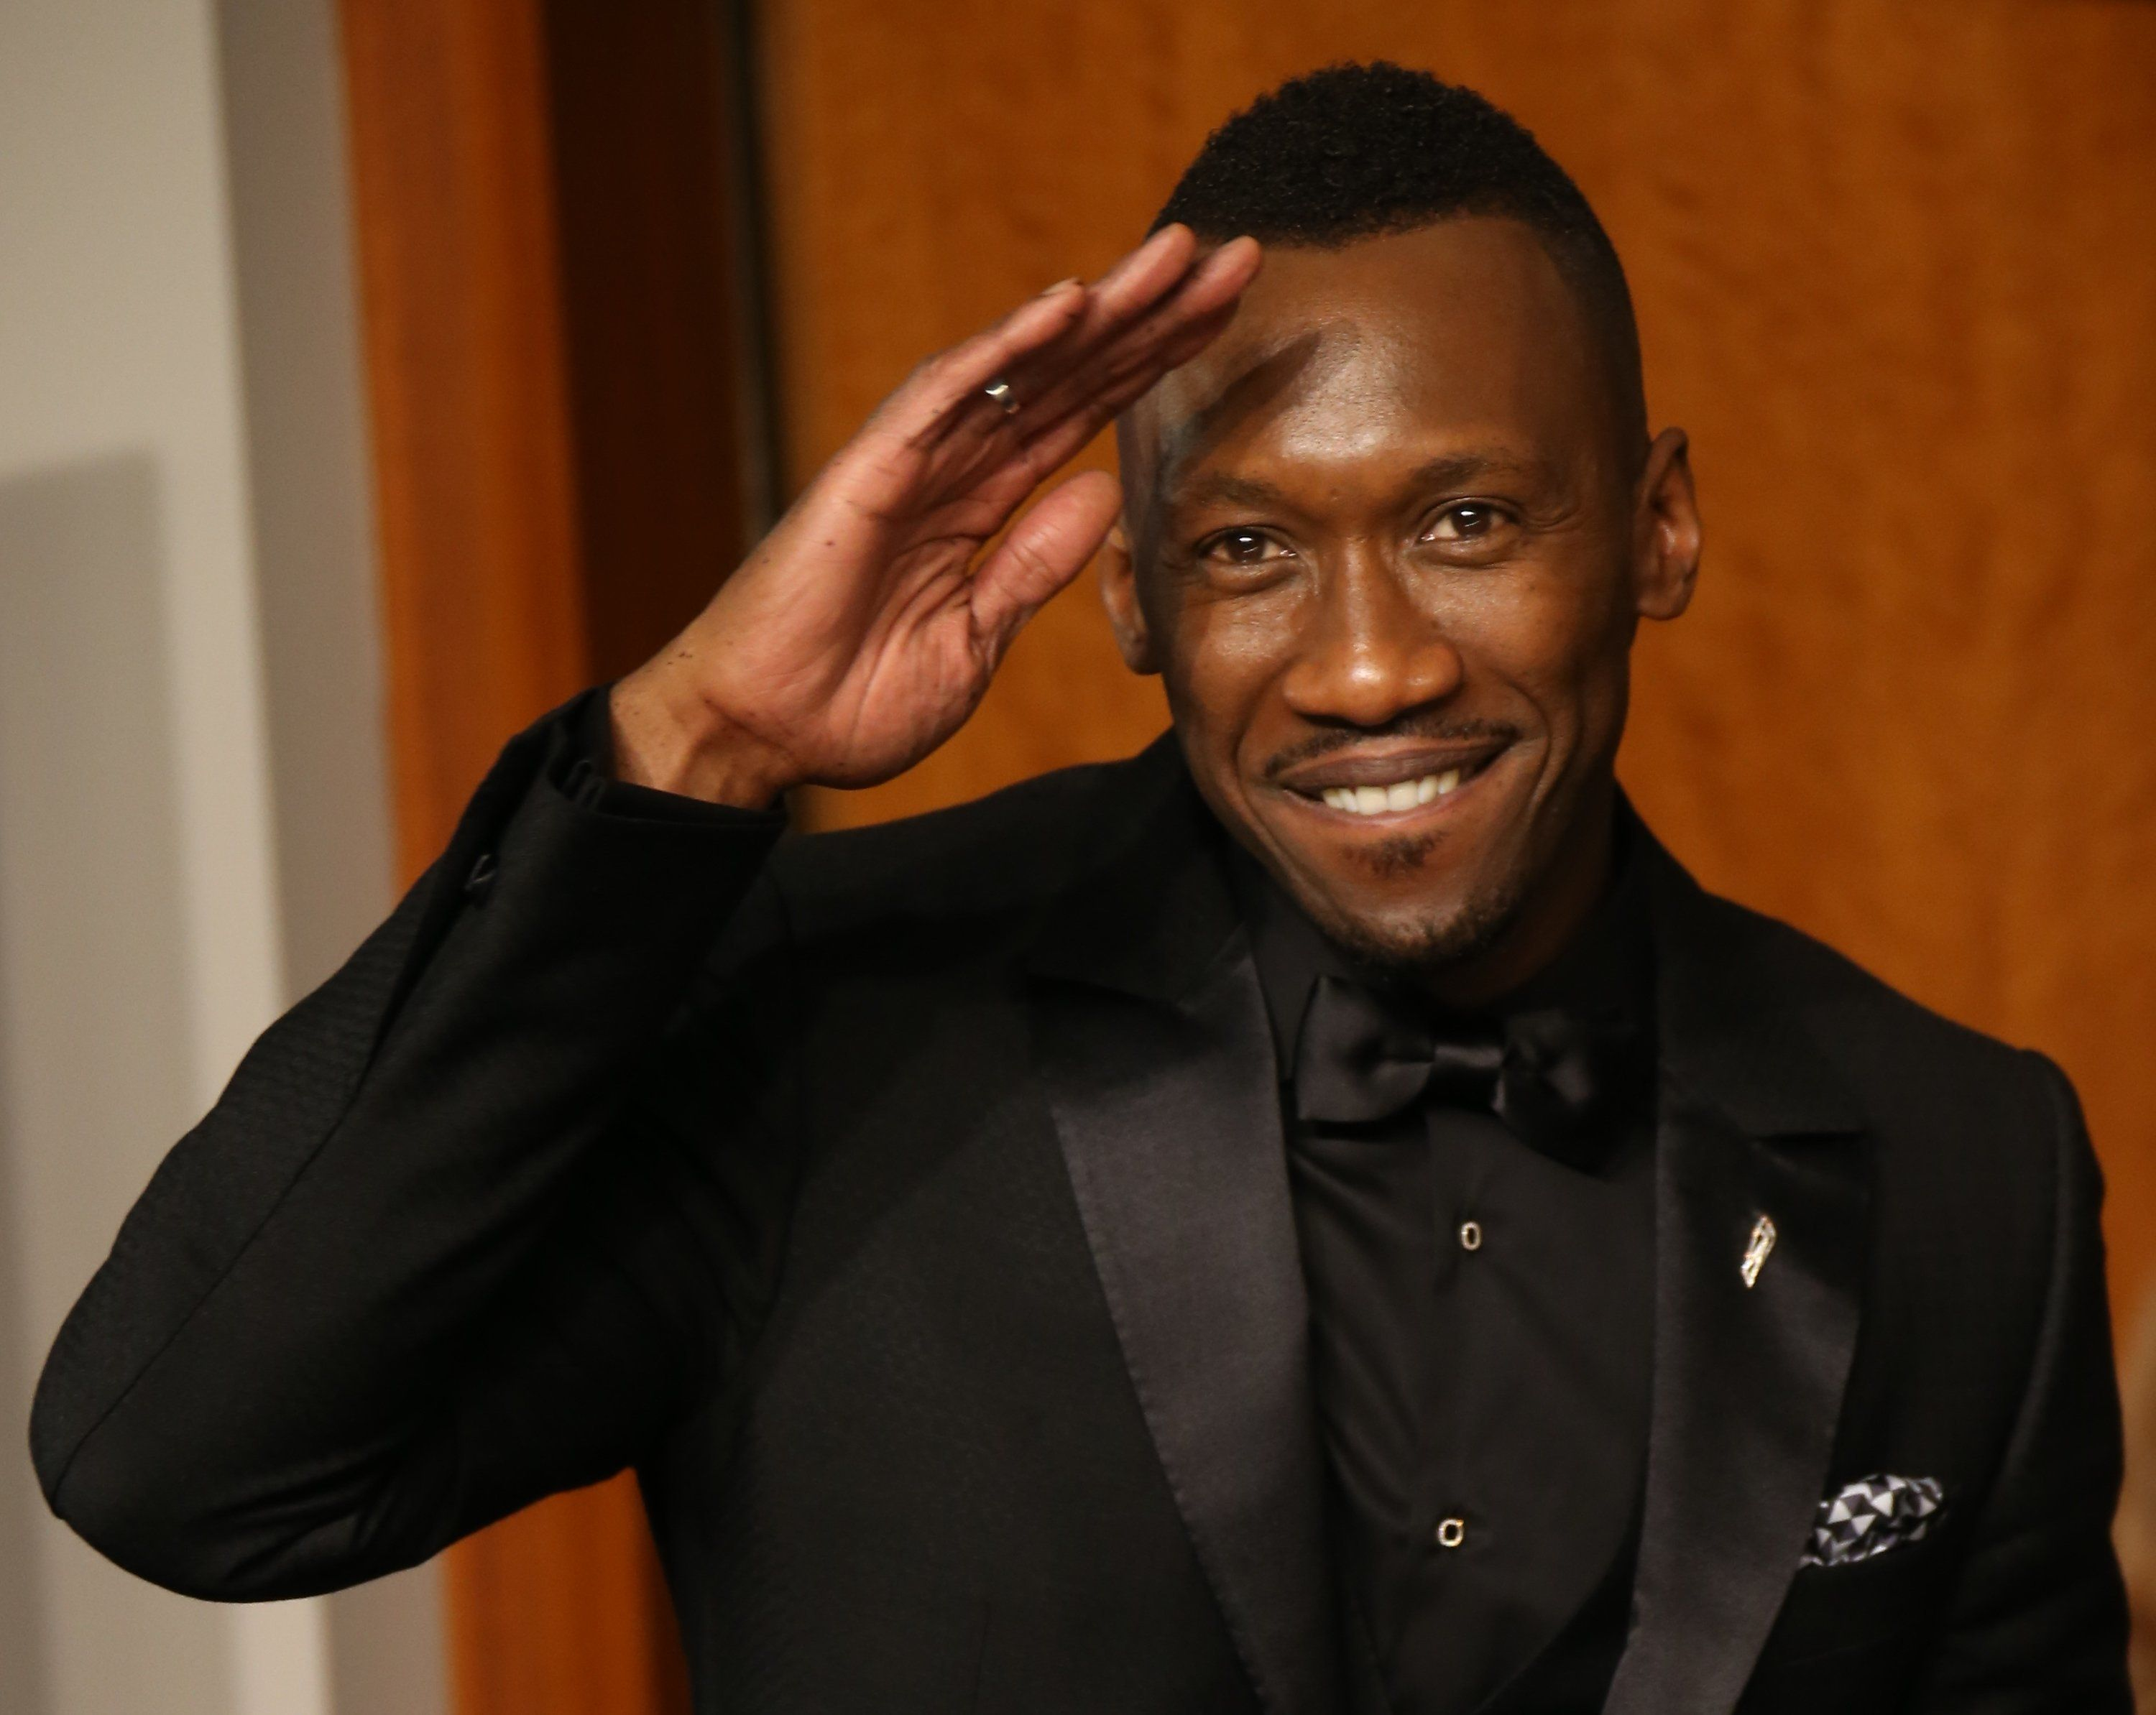 HOLLYWOOD, CA - FEBRUARY 26: Actor Mahershala Ali, winner of the award for Actor in a Supporting Role for 'Moonlight,' poses in the press room at the 89th Annual Academy Awards at Hollywood & Highland Center on February 26, 2017 in Hollywood, California. (Photo by Dan MacMedan/Getty Images)